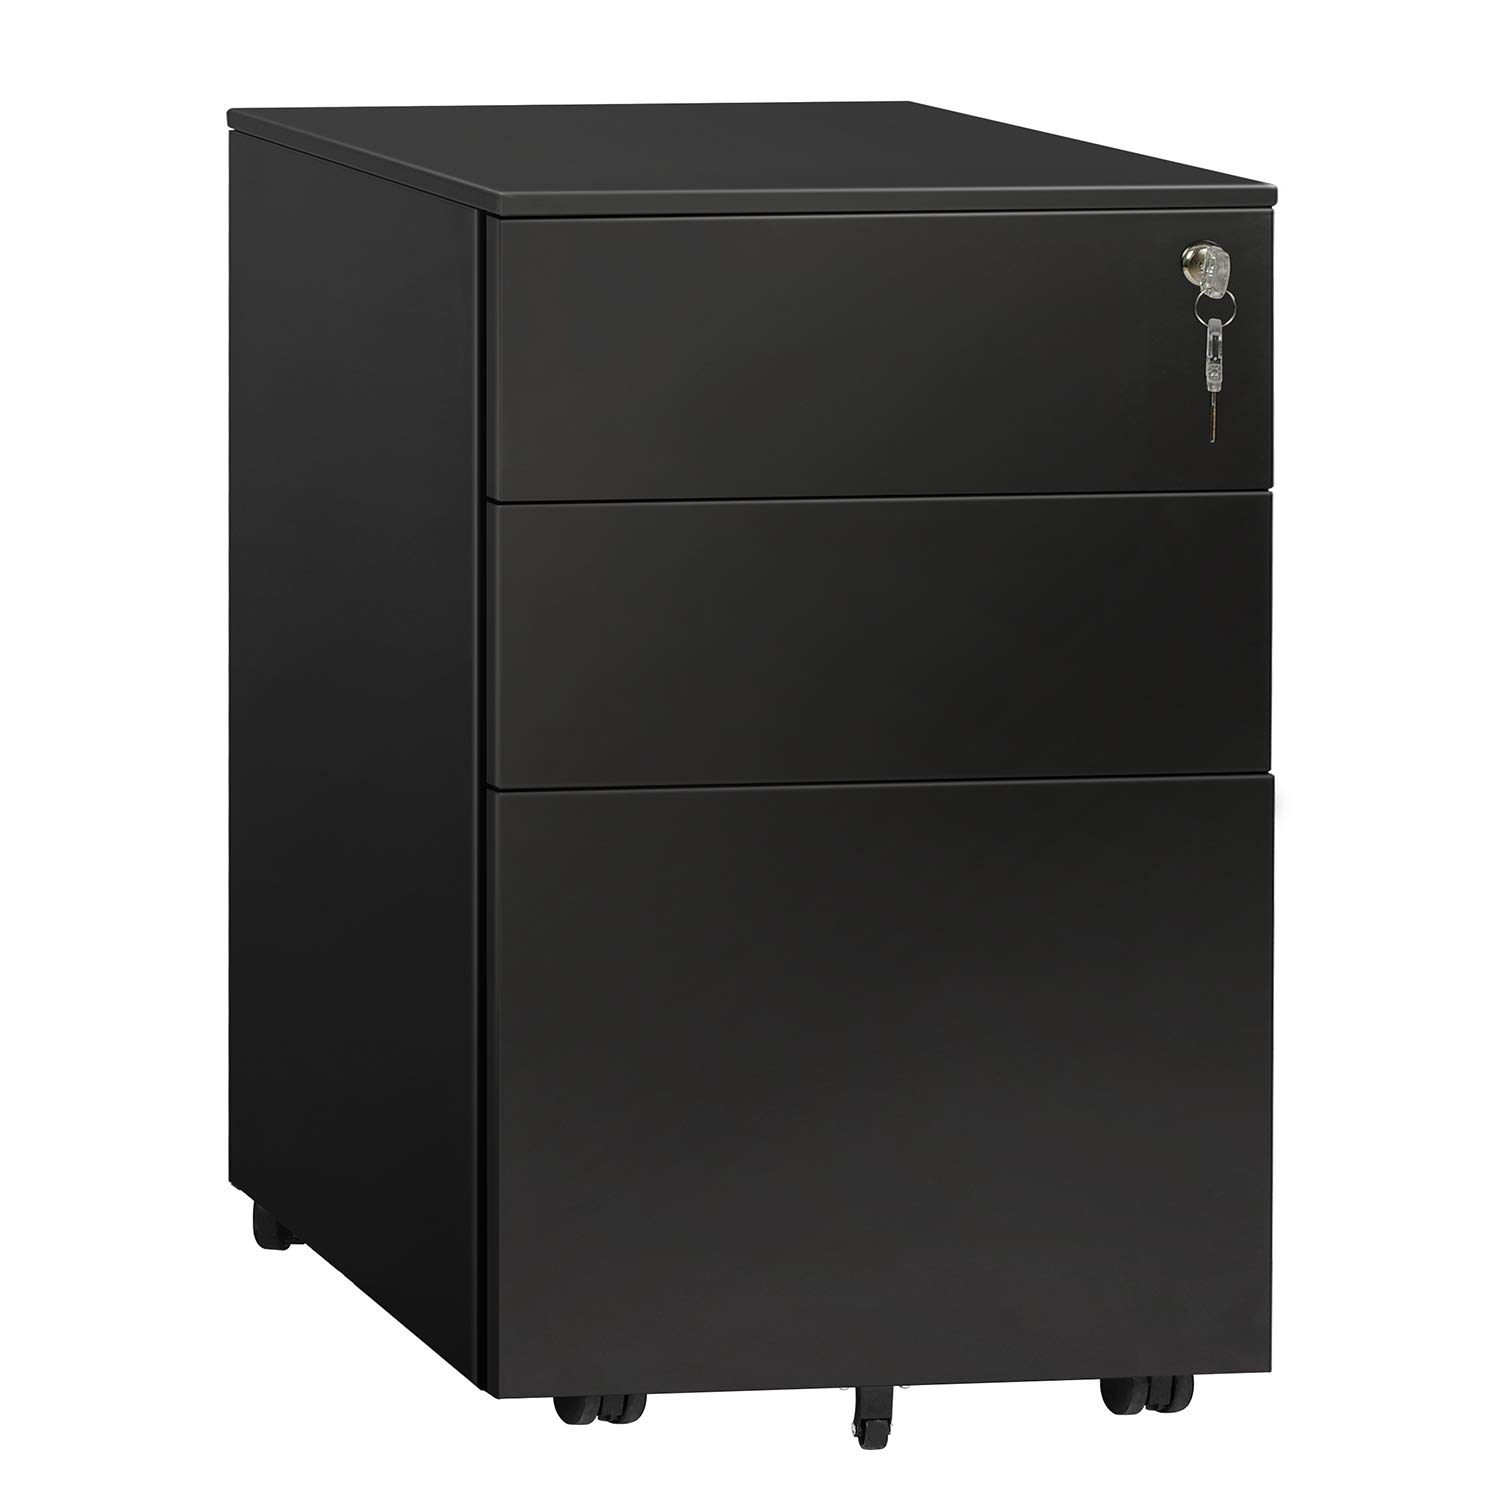 DEVAISE 3 Drawer File Cabinet with Lock, Steel Mobile Filing Cabinet, Office Pedestal, Fully Assembled Except Casters by DEVAISE